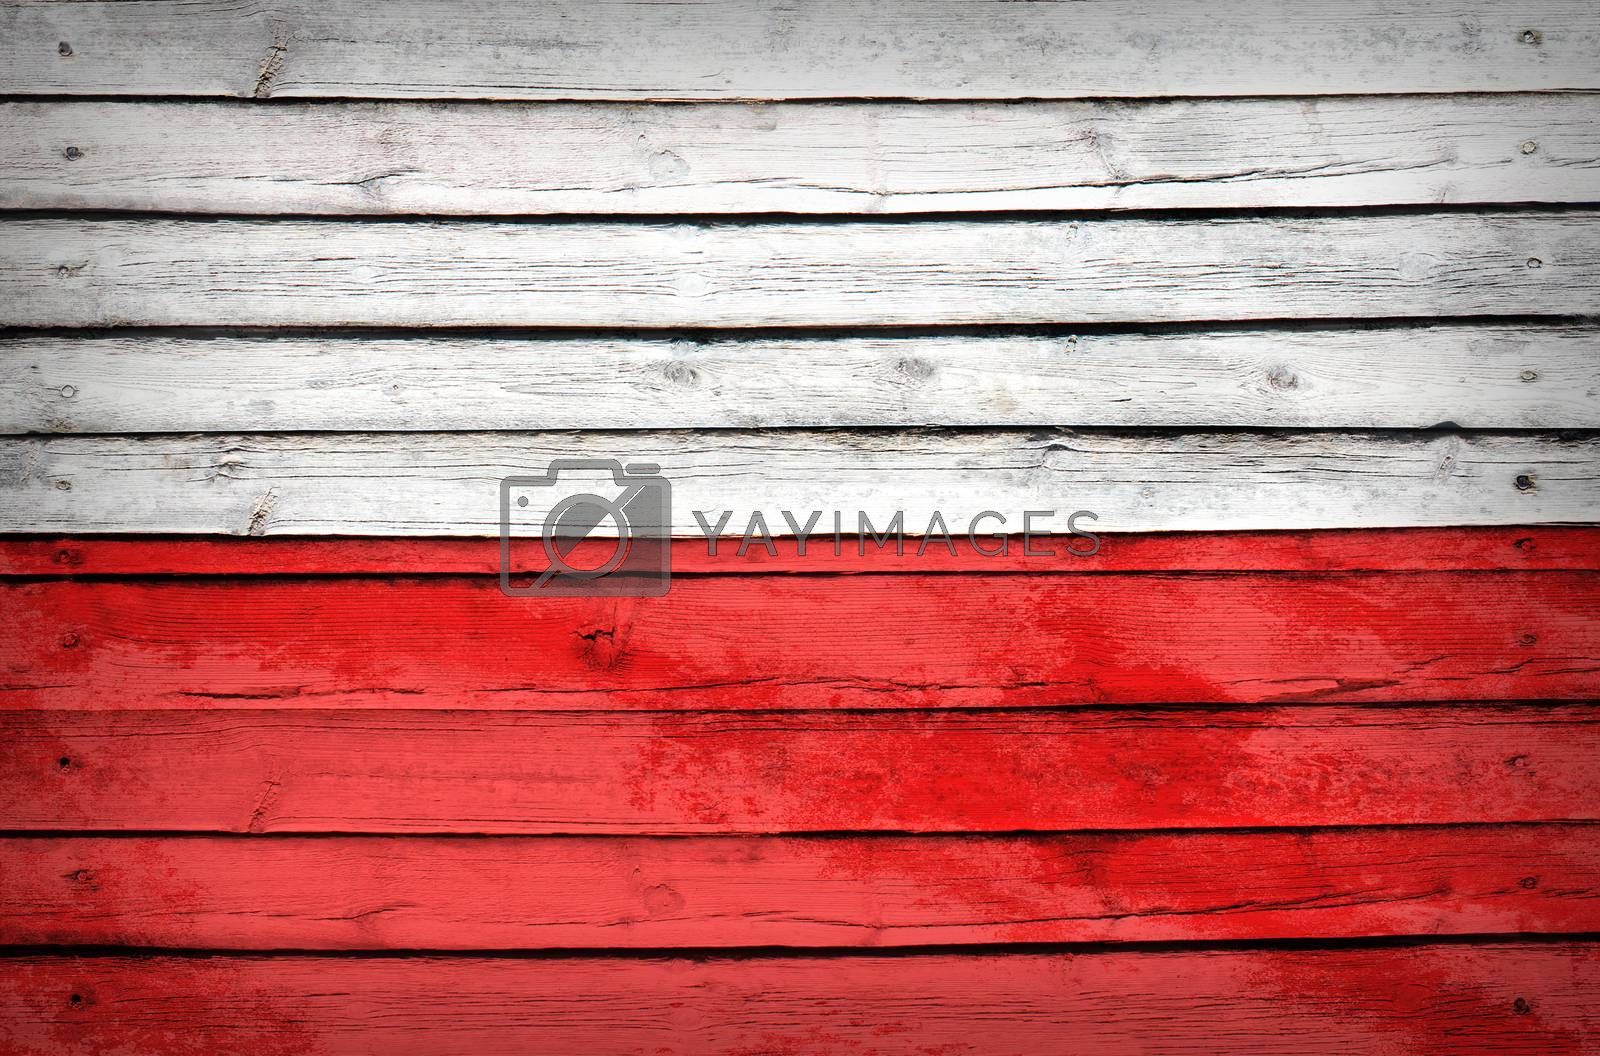 Poland flag painted on wooden boards by cherezoff